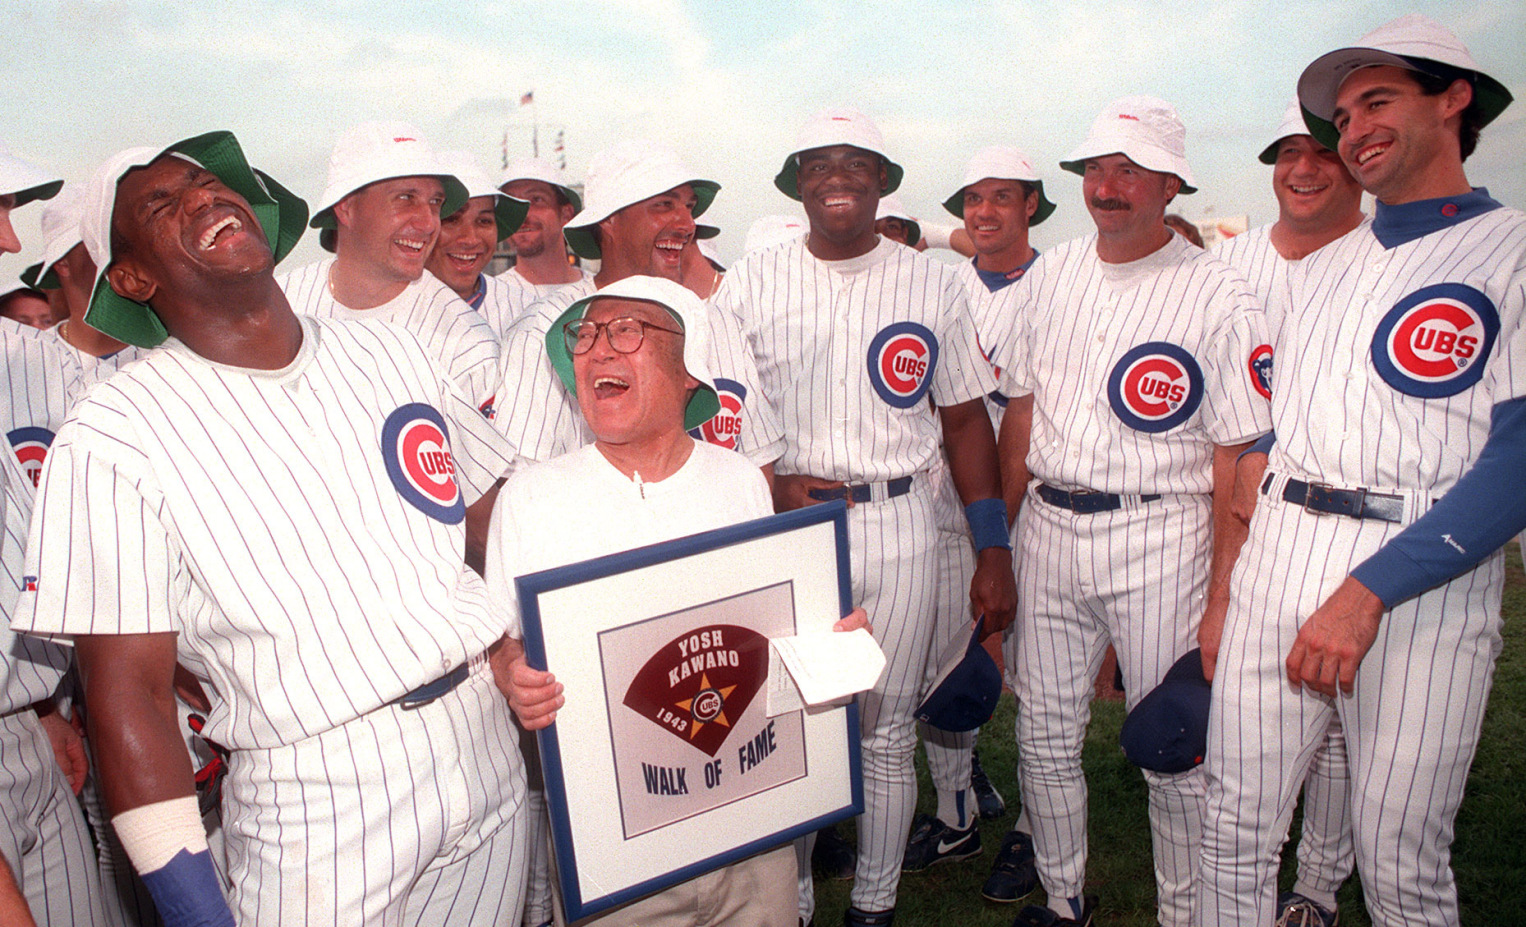 Yosh Kawano is inducted into the Cubs Walk of Fame in 1996.